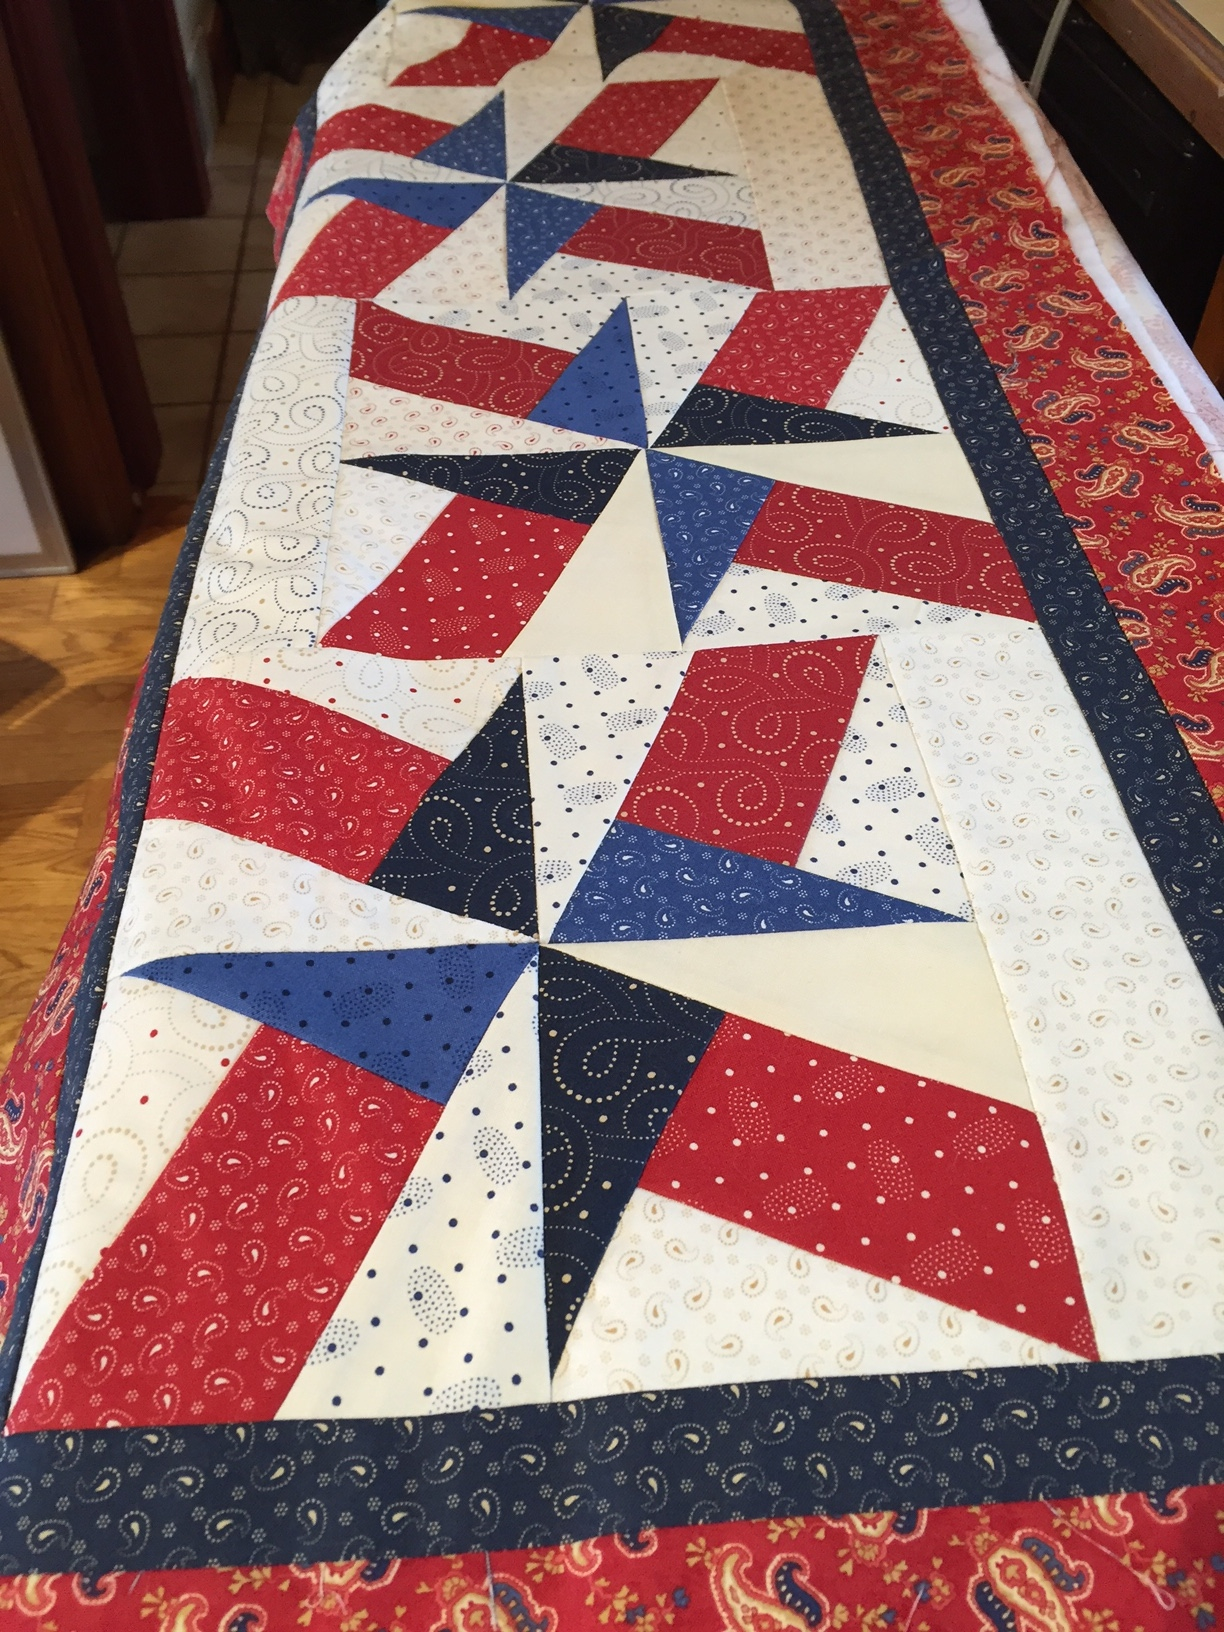 Awe Inspiring Fireworks A Patriotic Table Runner Home Interior And Landscaping Eliaenasavecom